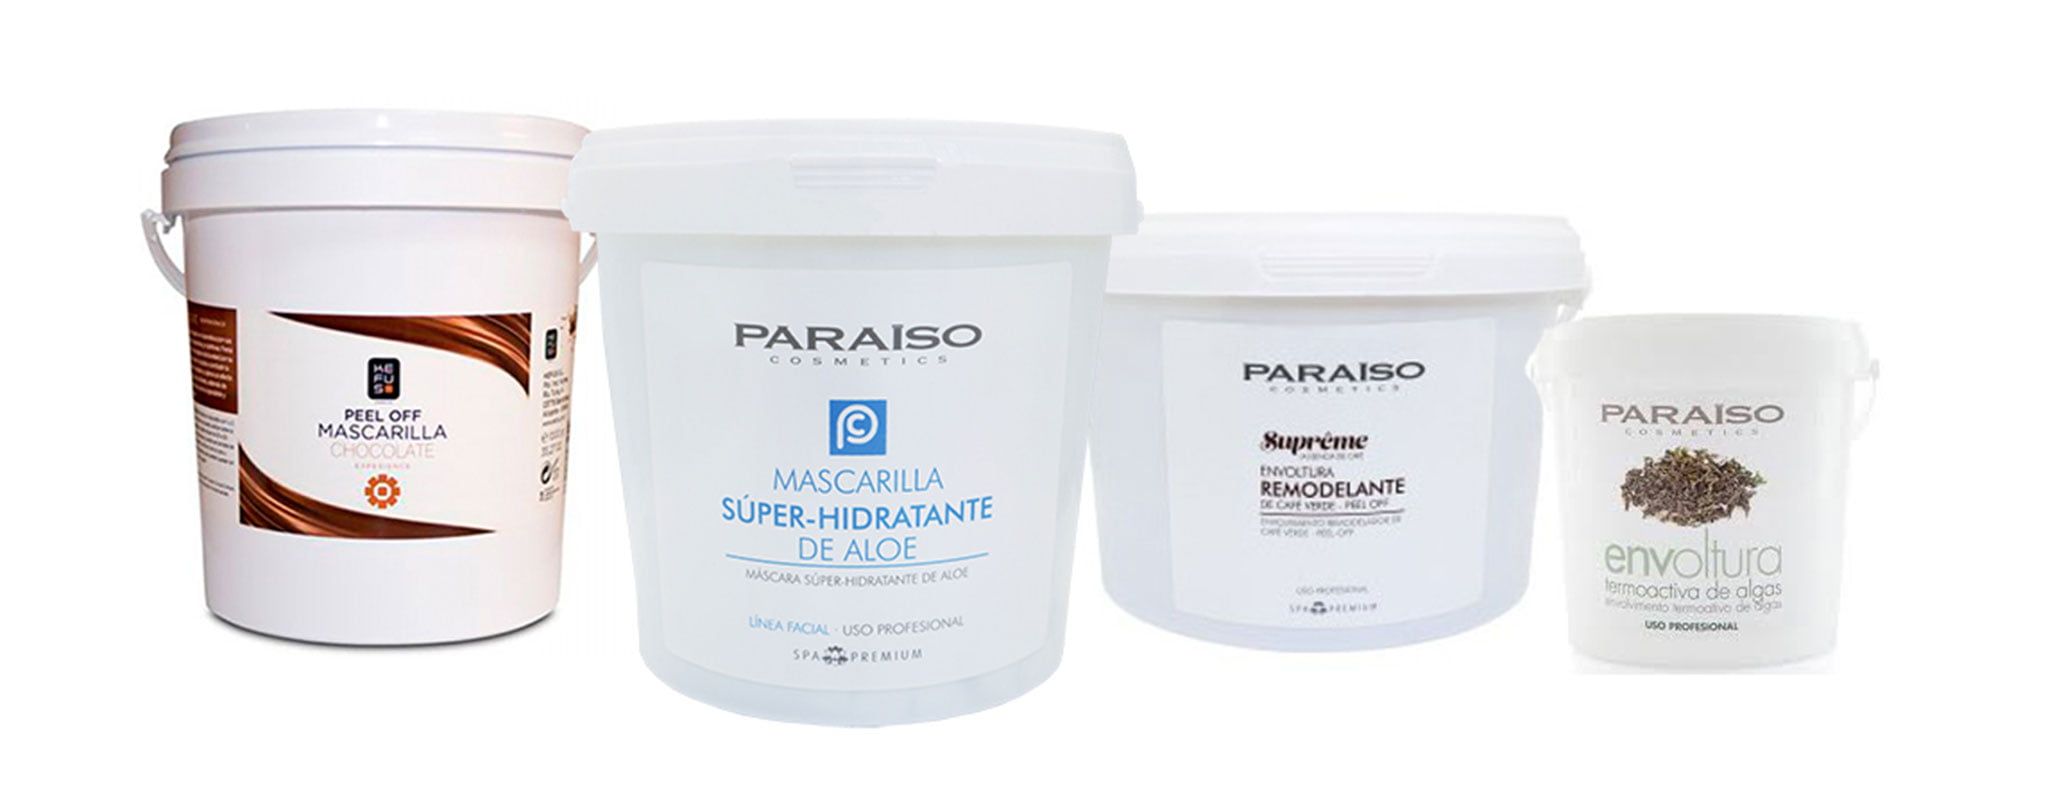 Wraps and masks Paraiso Cosmetics and Kefus - Doré